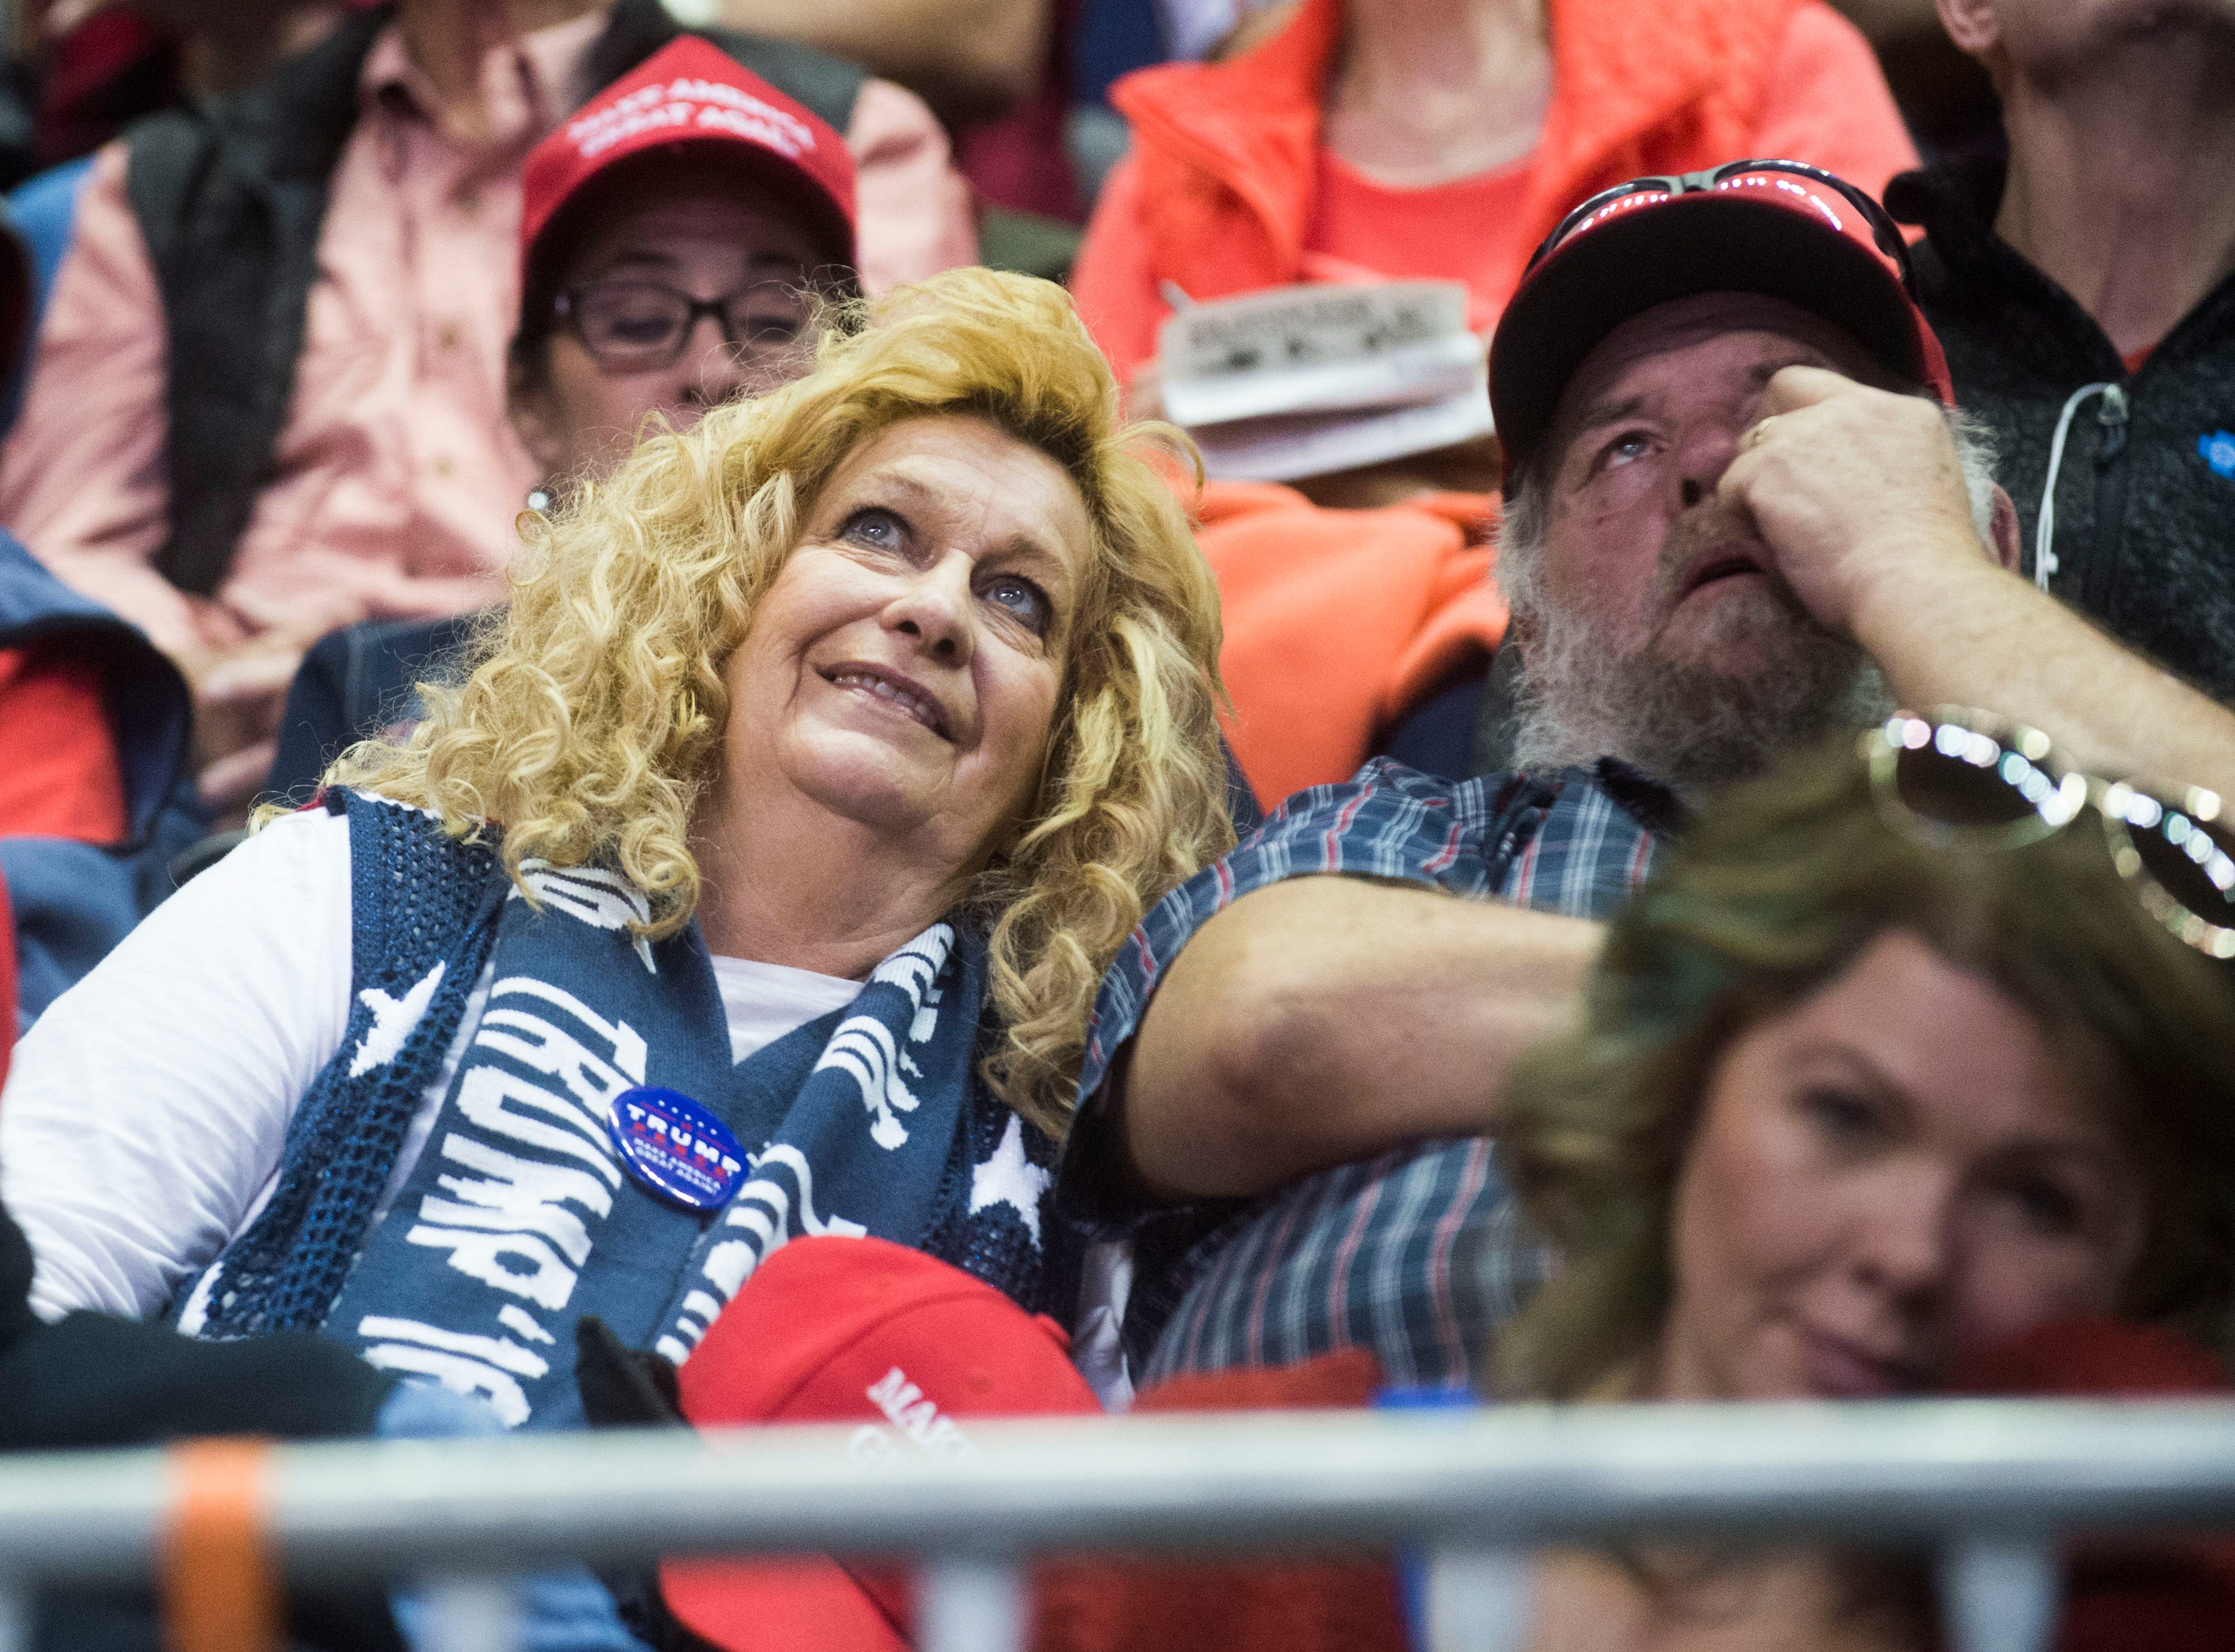 Donald Trump supporters sit in the arena before a Donald Trump rally in support of U.S. Rep. Marsha Blackburn for the U.S. Senate at McKenzie Arena in Chattanooga, Sunday, Nov. 4, 2018.